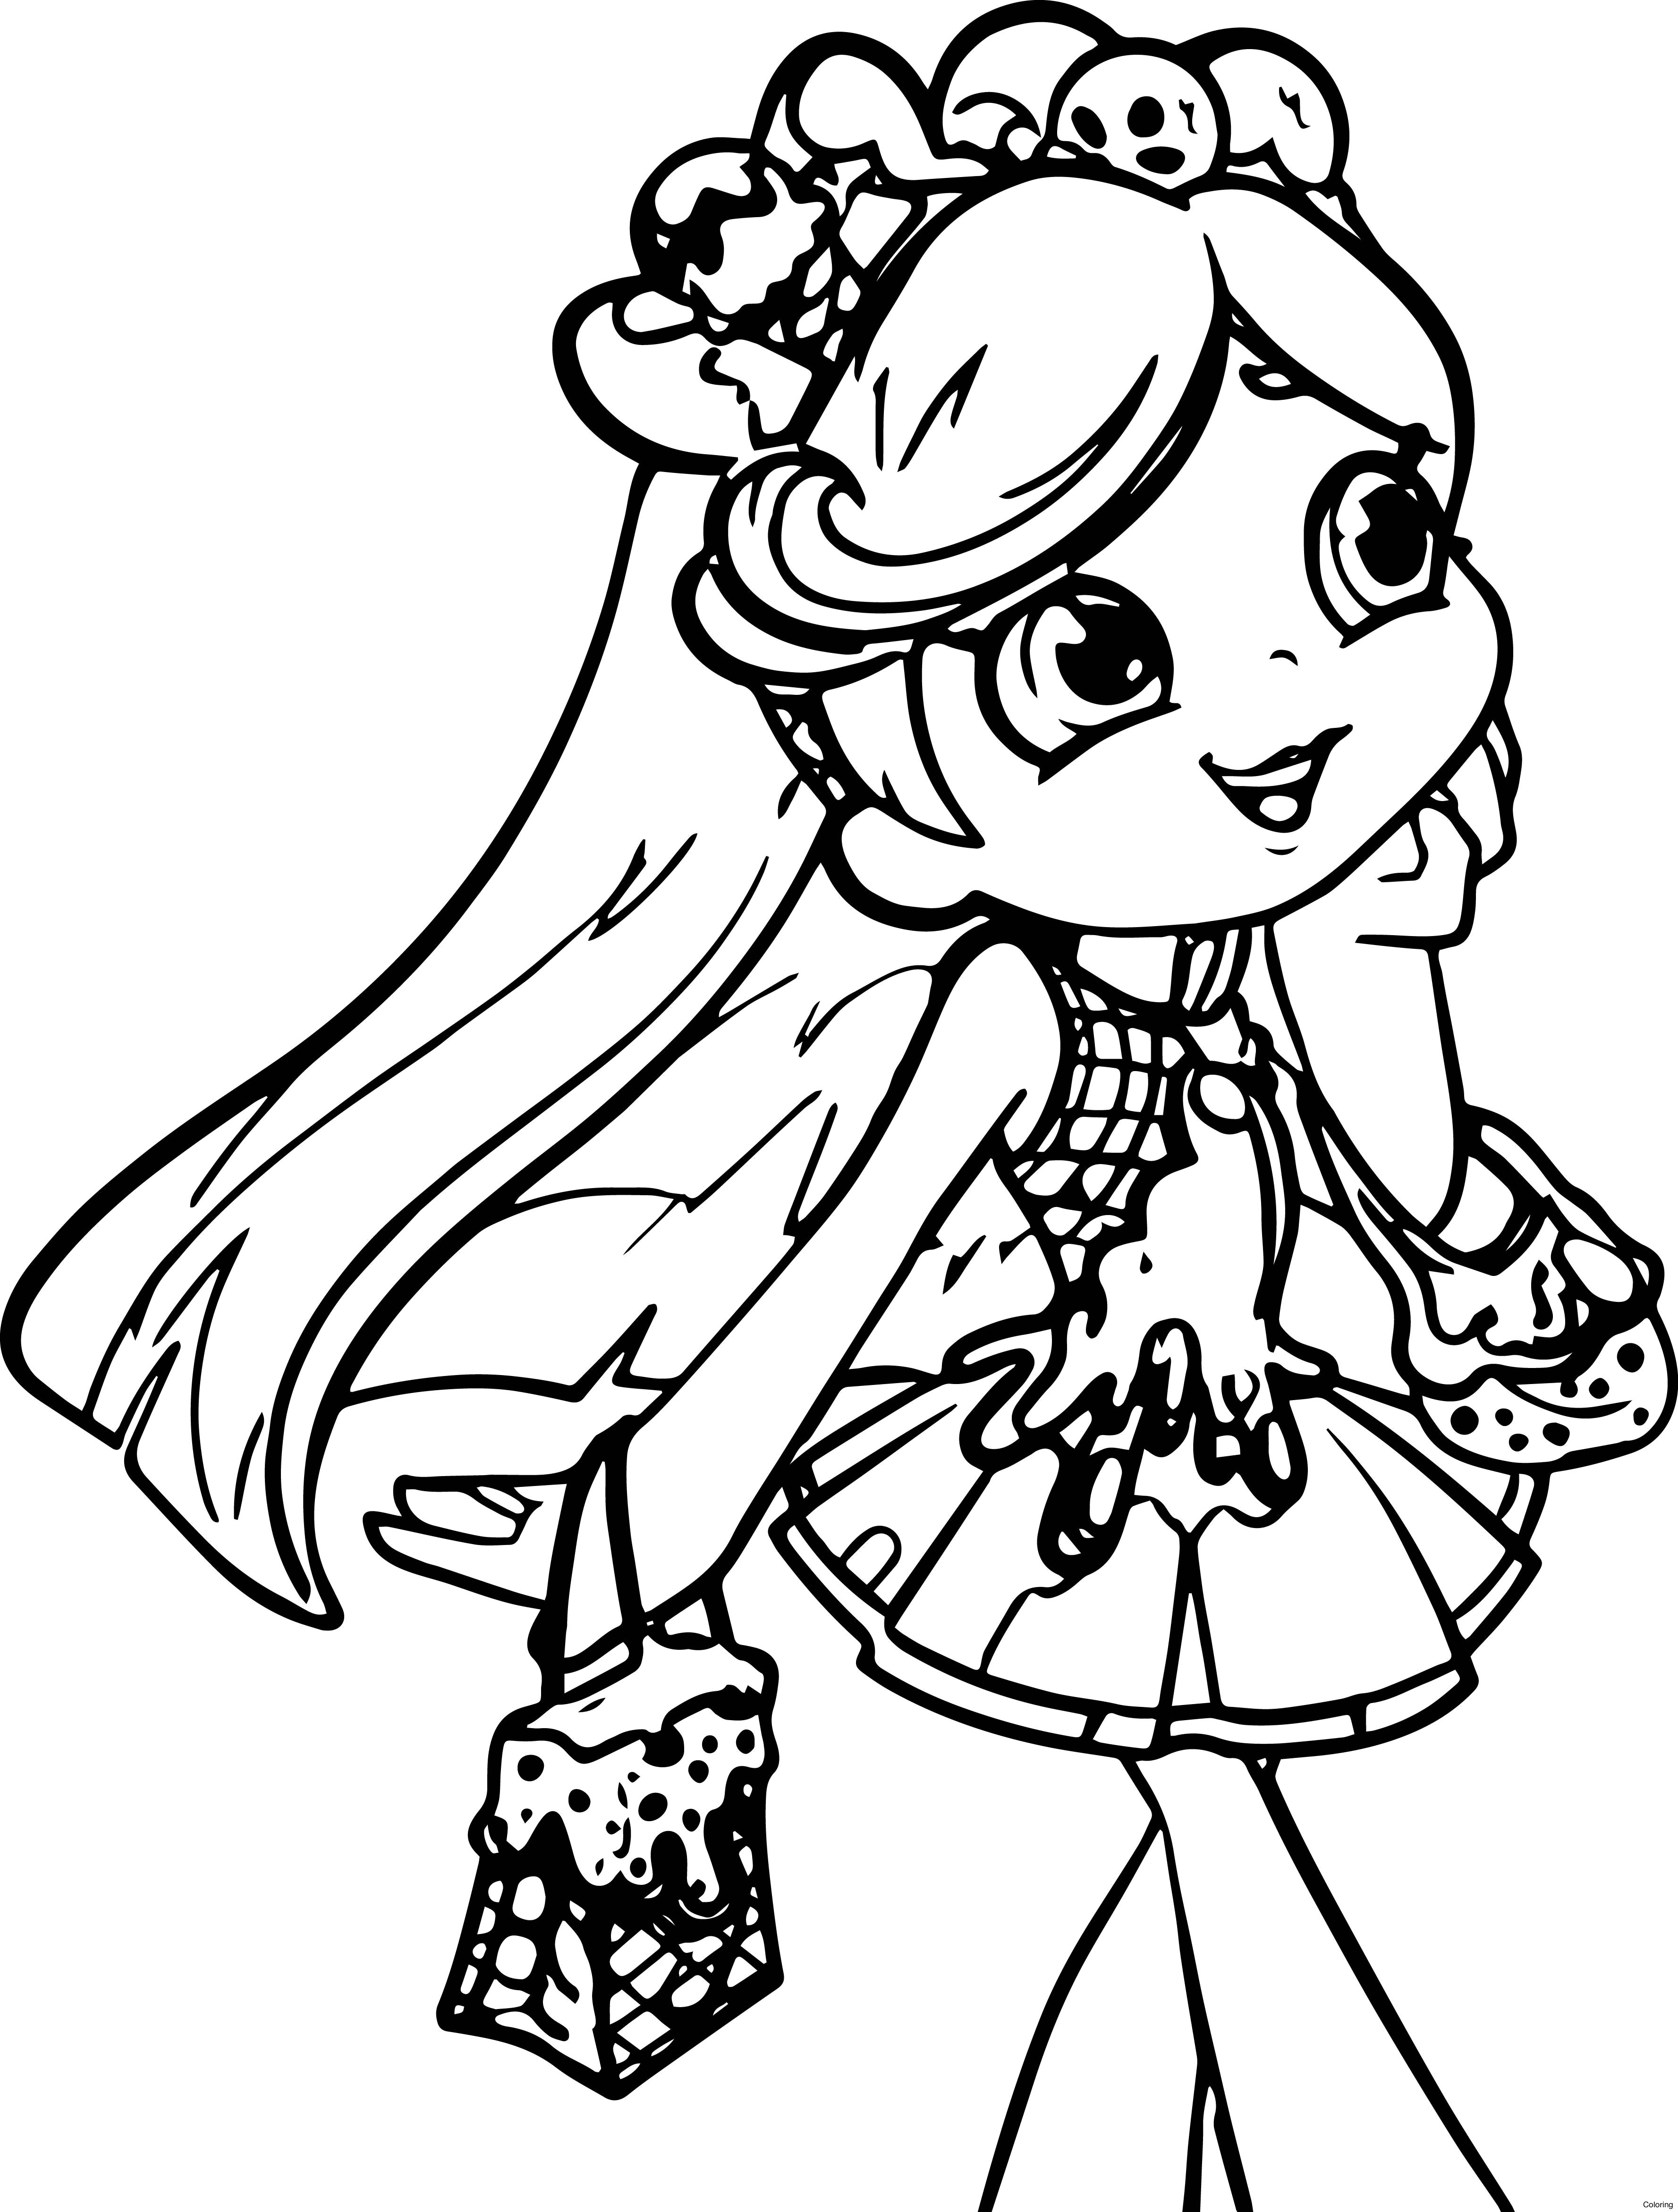 Shopkins Coloring Pages Season 3 At Getdrawings Com Free For